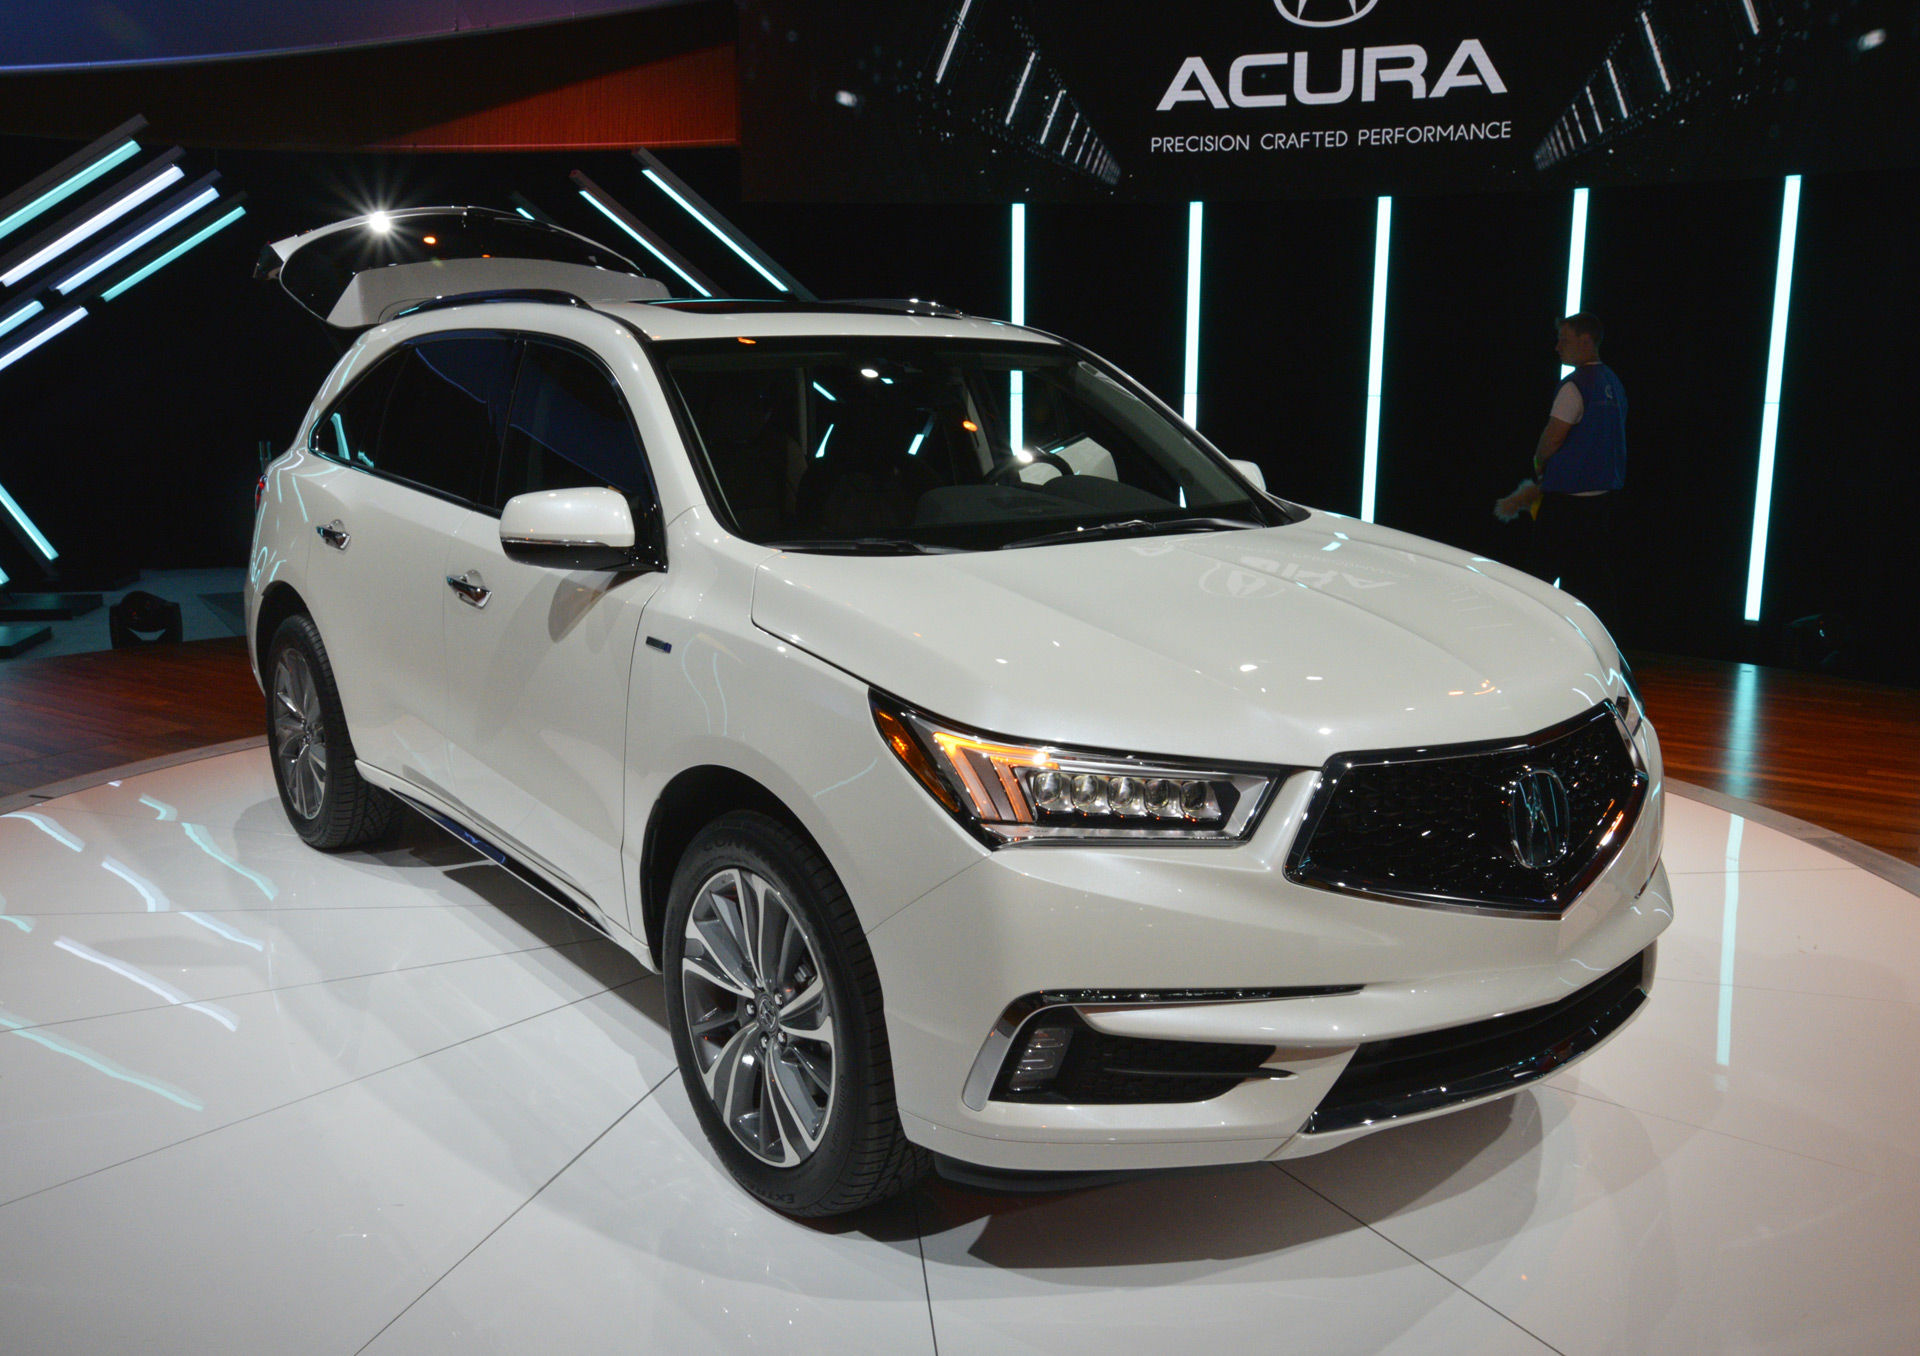 2017 acura mdx video preview. Black Bedroom Furniture Sets. Home Design Ideas